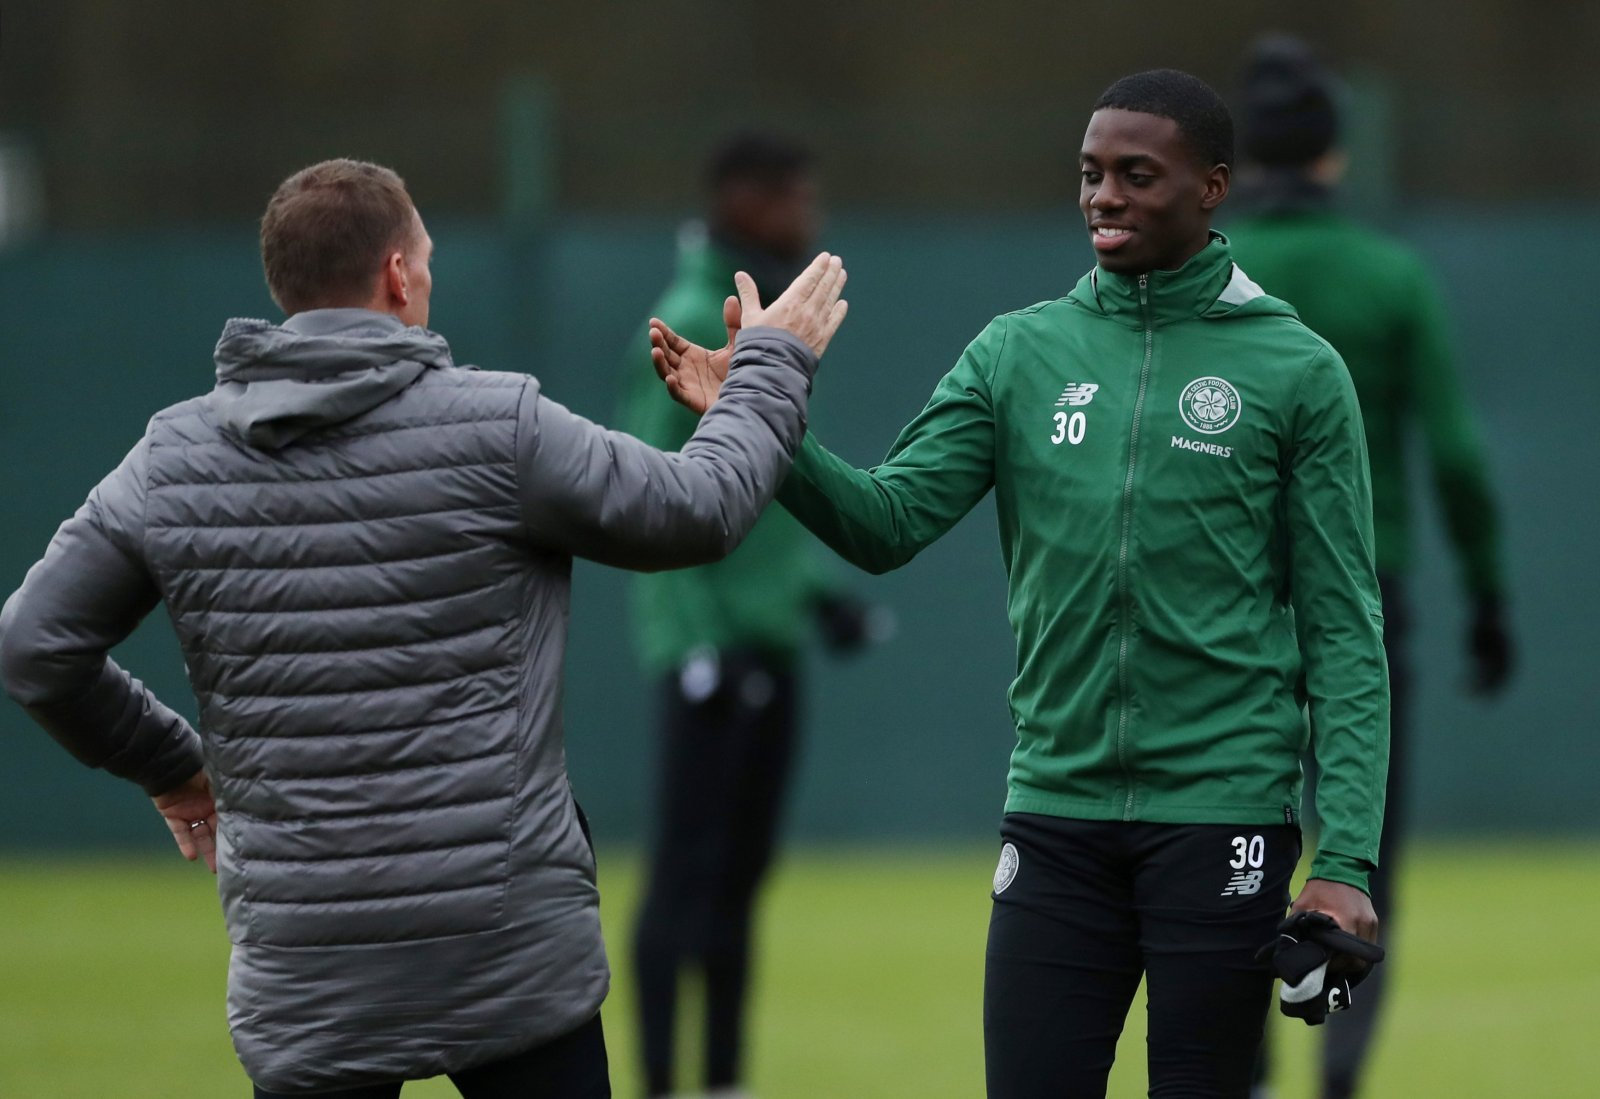 Celtic fans on Twitter all loved seeing Weah bag after starting